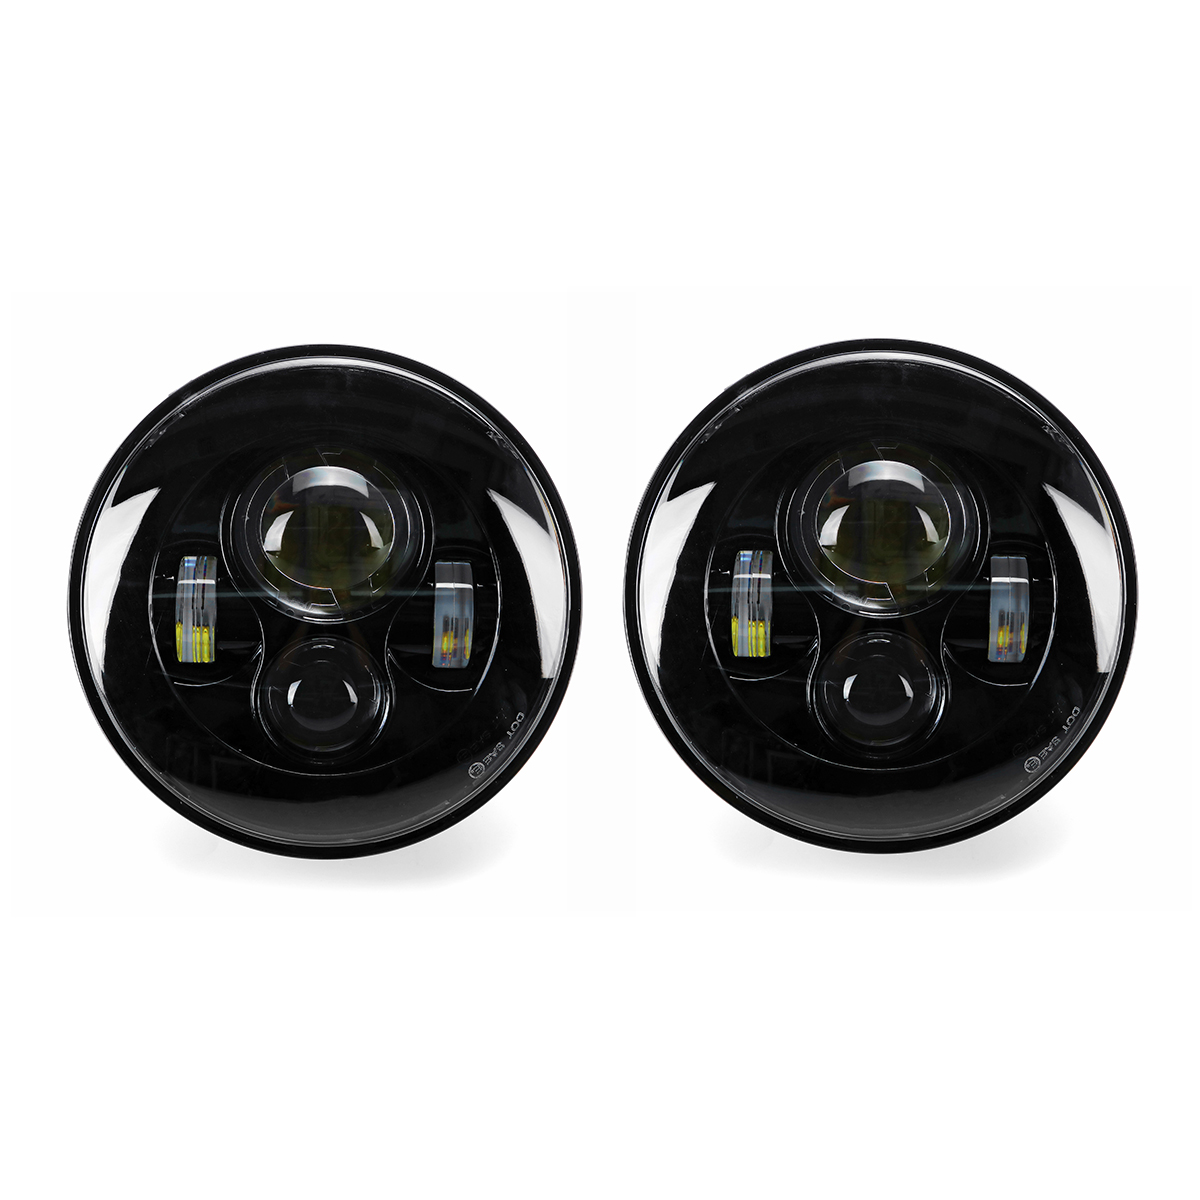 2 x 7 Round LED Projection Headlights Head Lamp Hight/Low Beam F